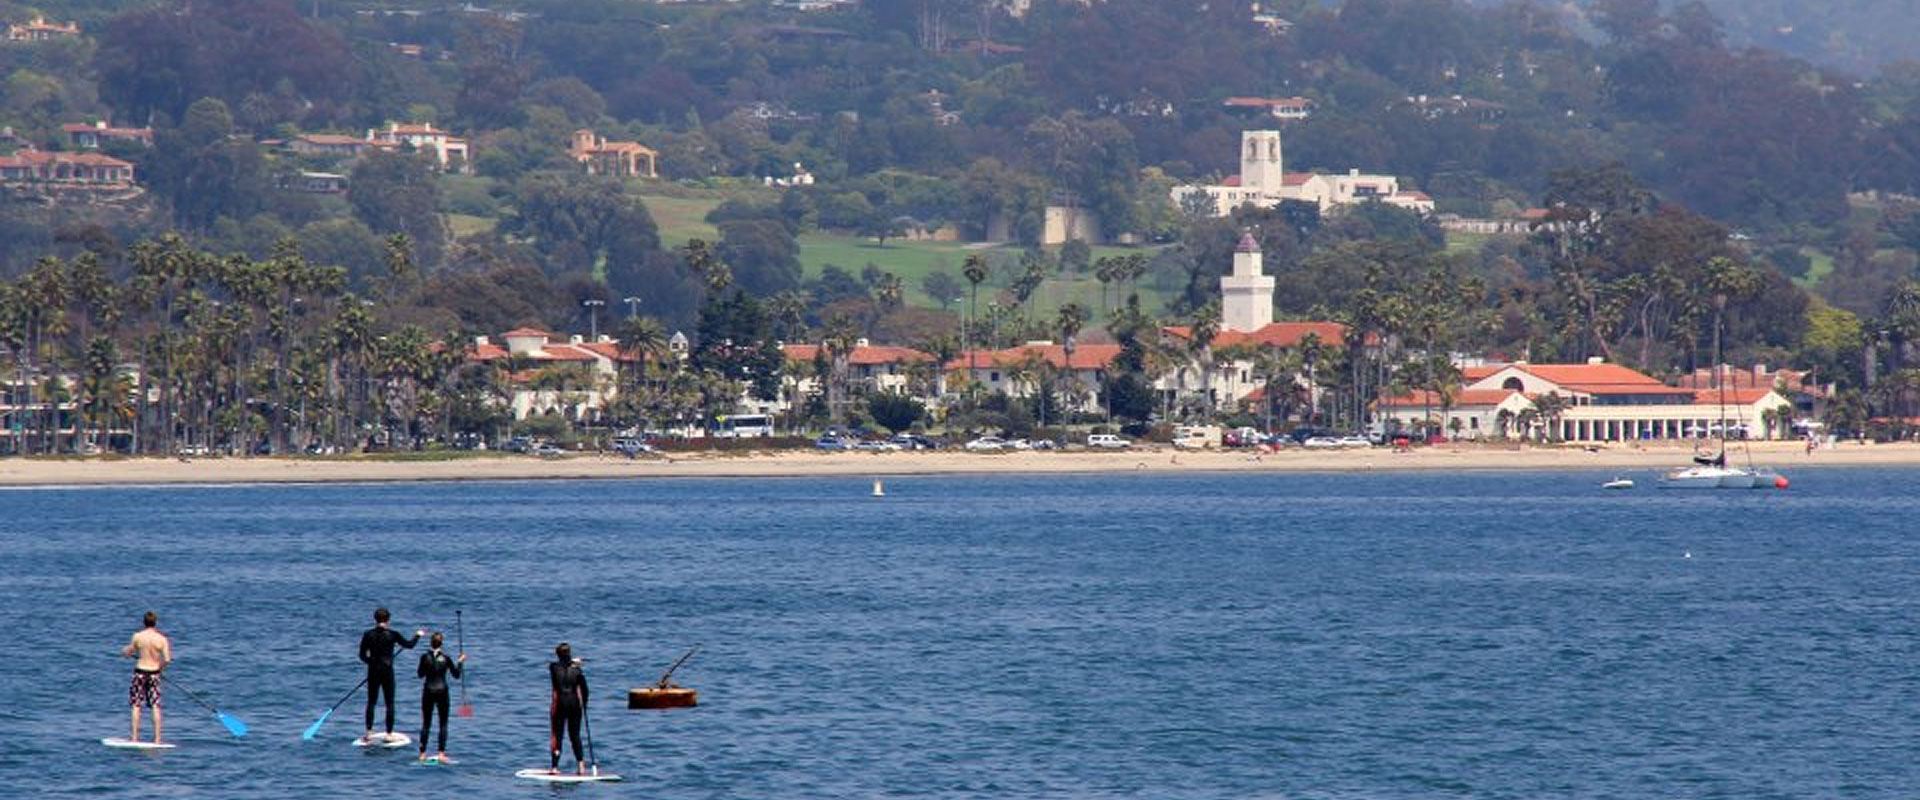 Enjoy the best Santa Barbara experience.